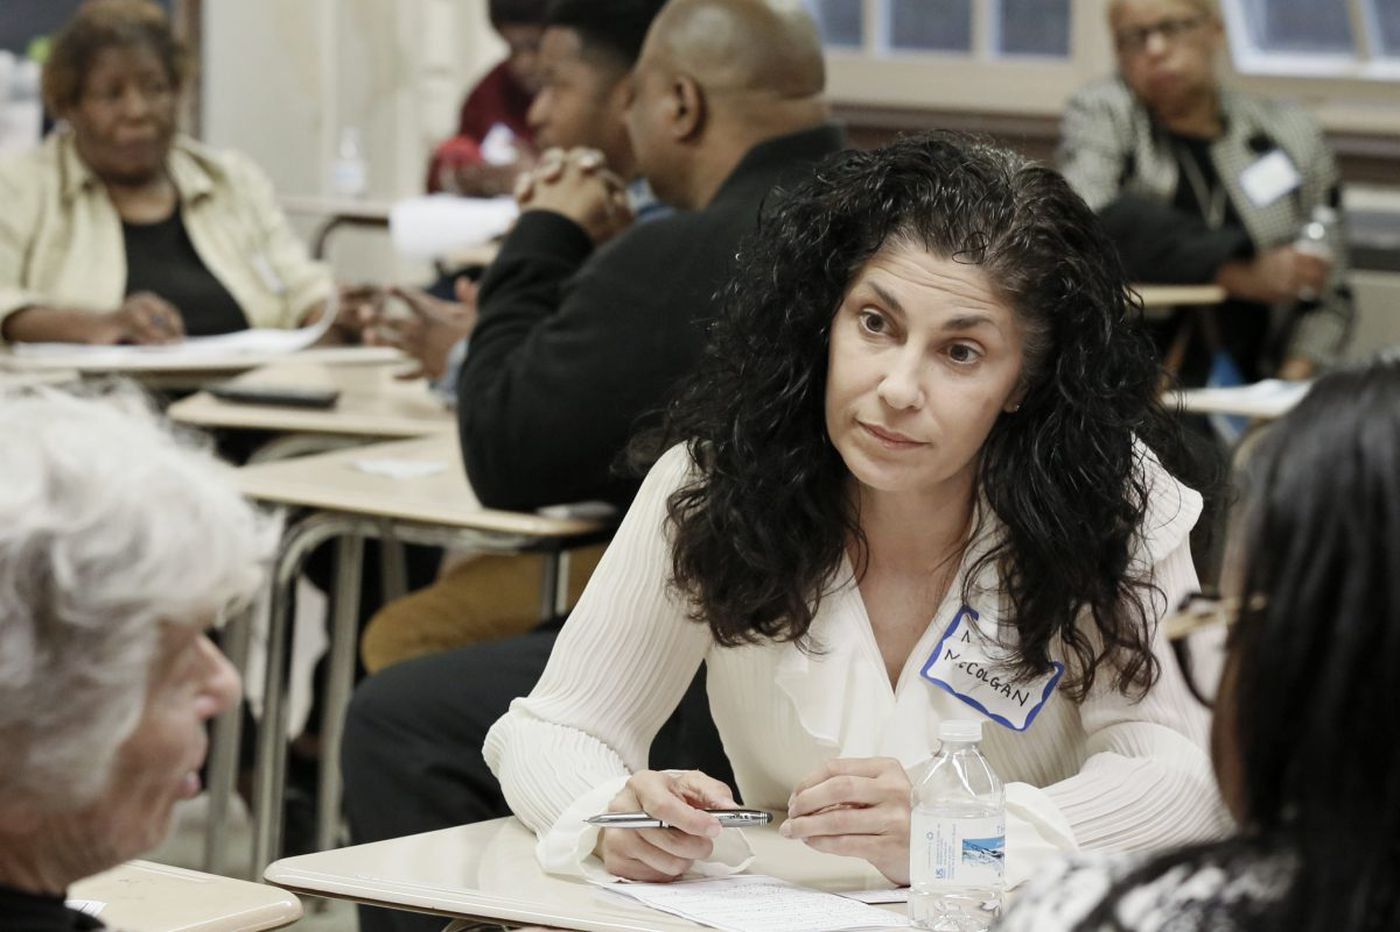 In first public duties, new Philly school board gets an earful from community